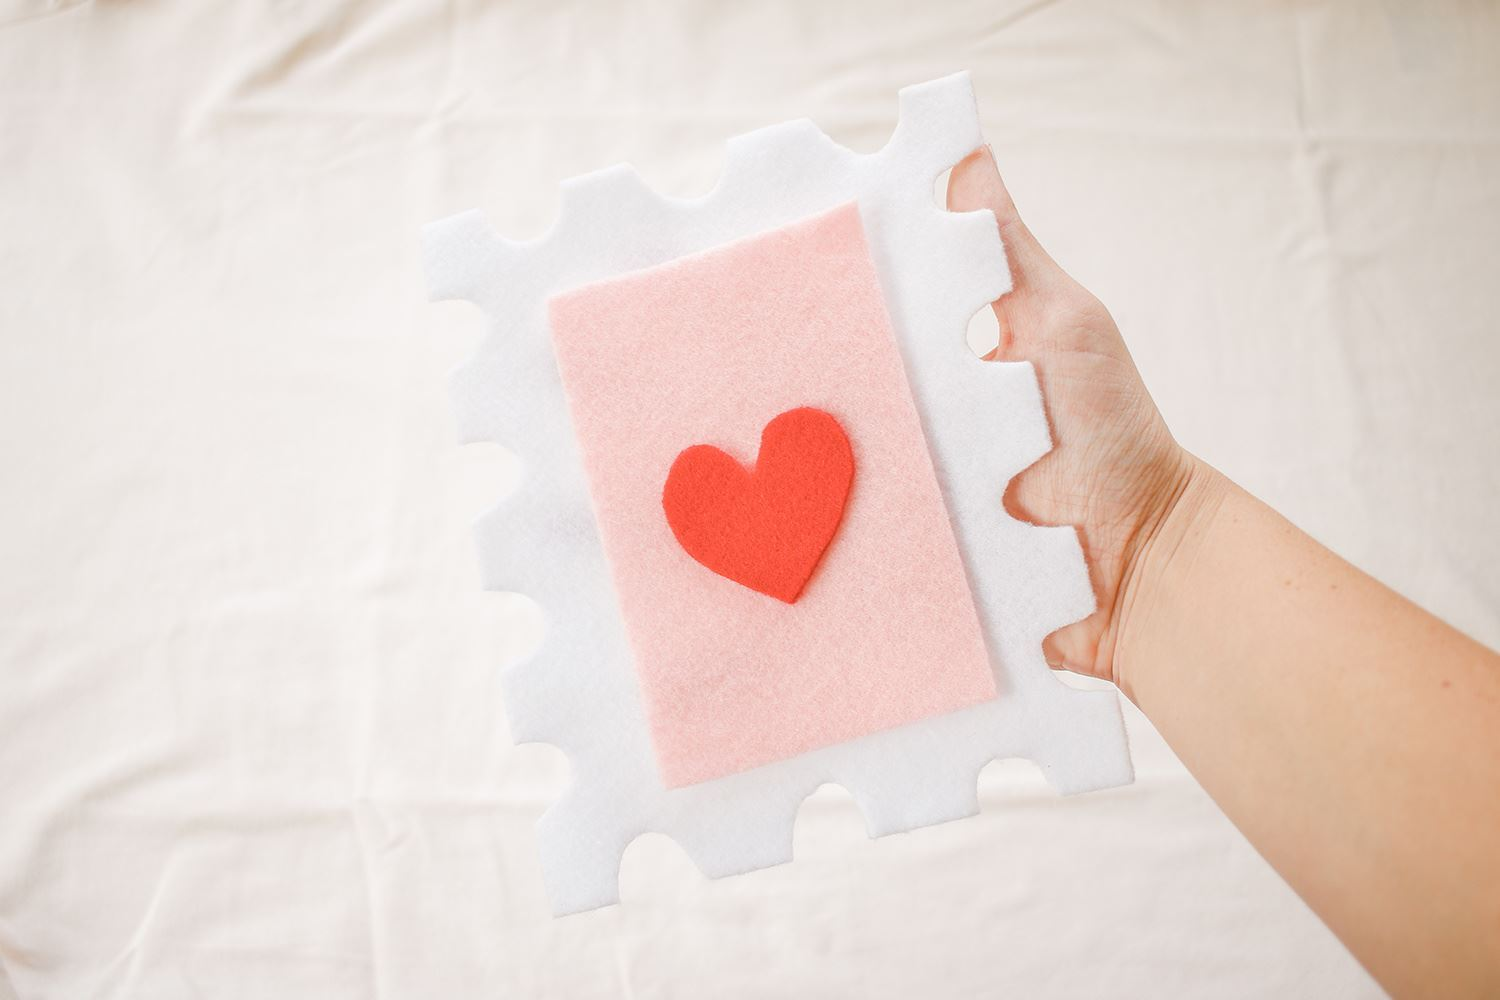 Glue heart and rectangle onto stamp cutout